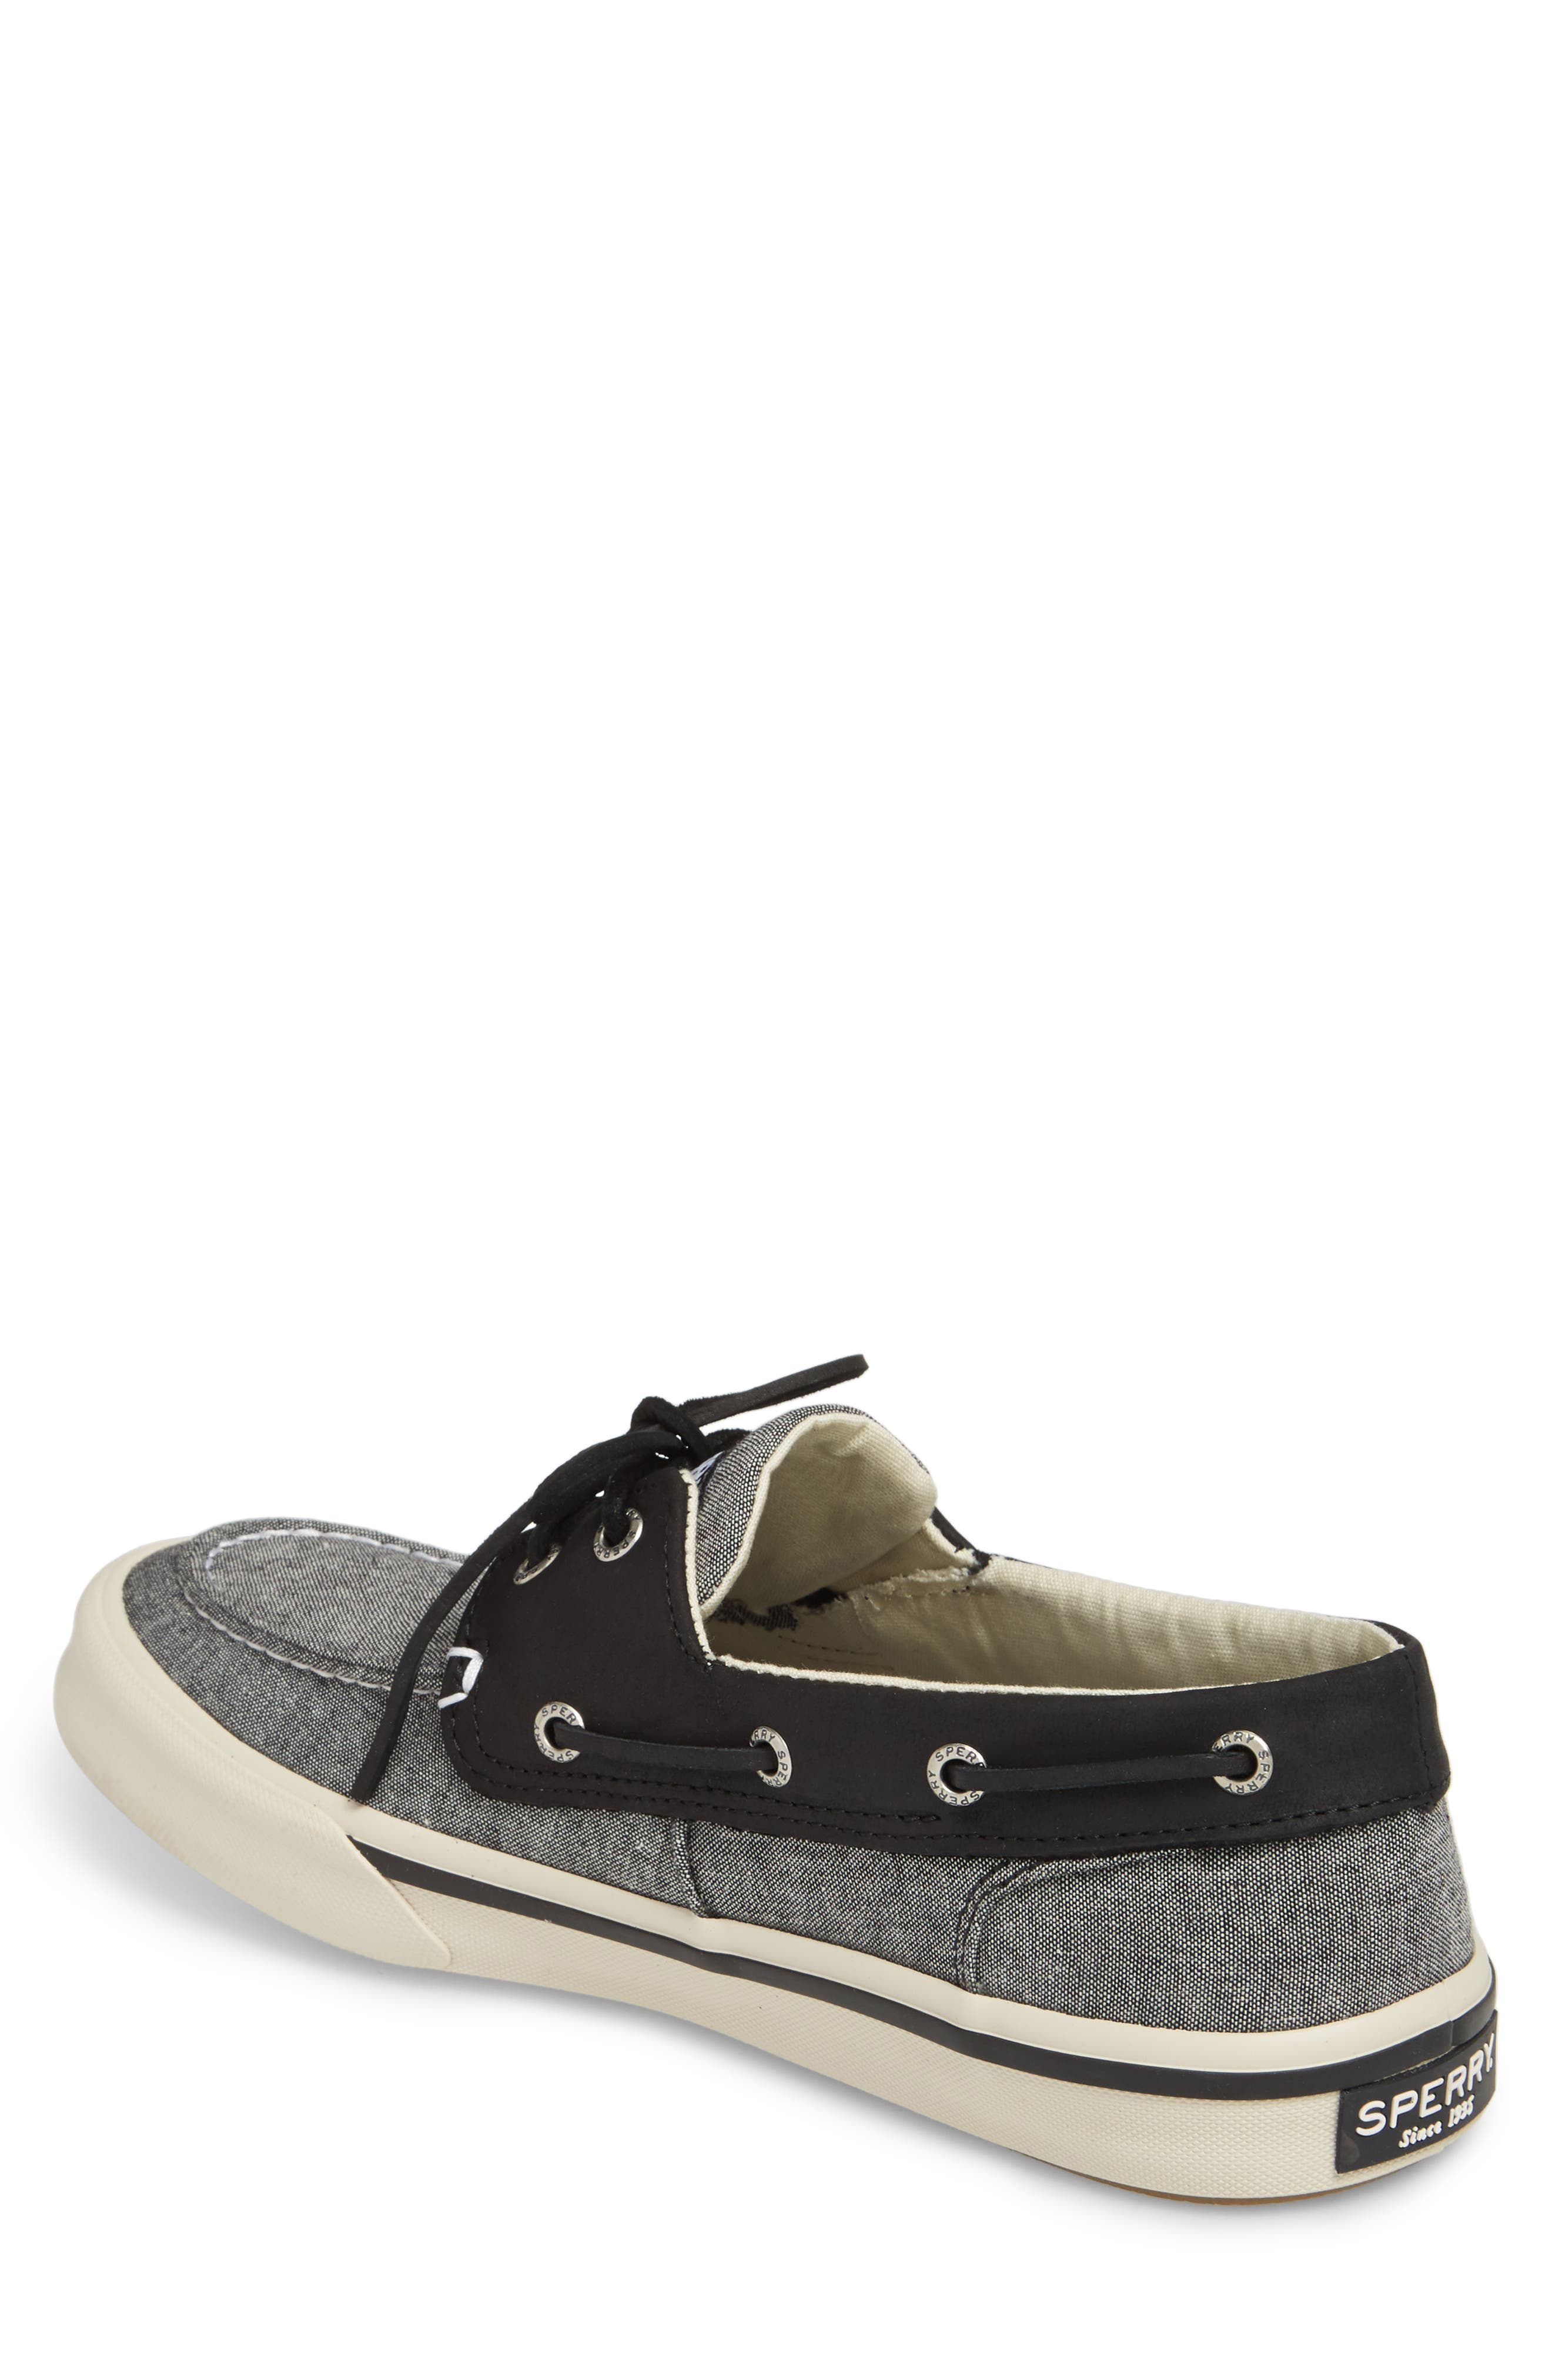 Bahama II Boat Shoe,                             Alternate thumbnail 2, color,                             021